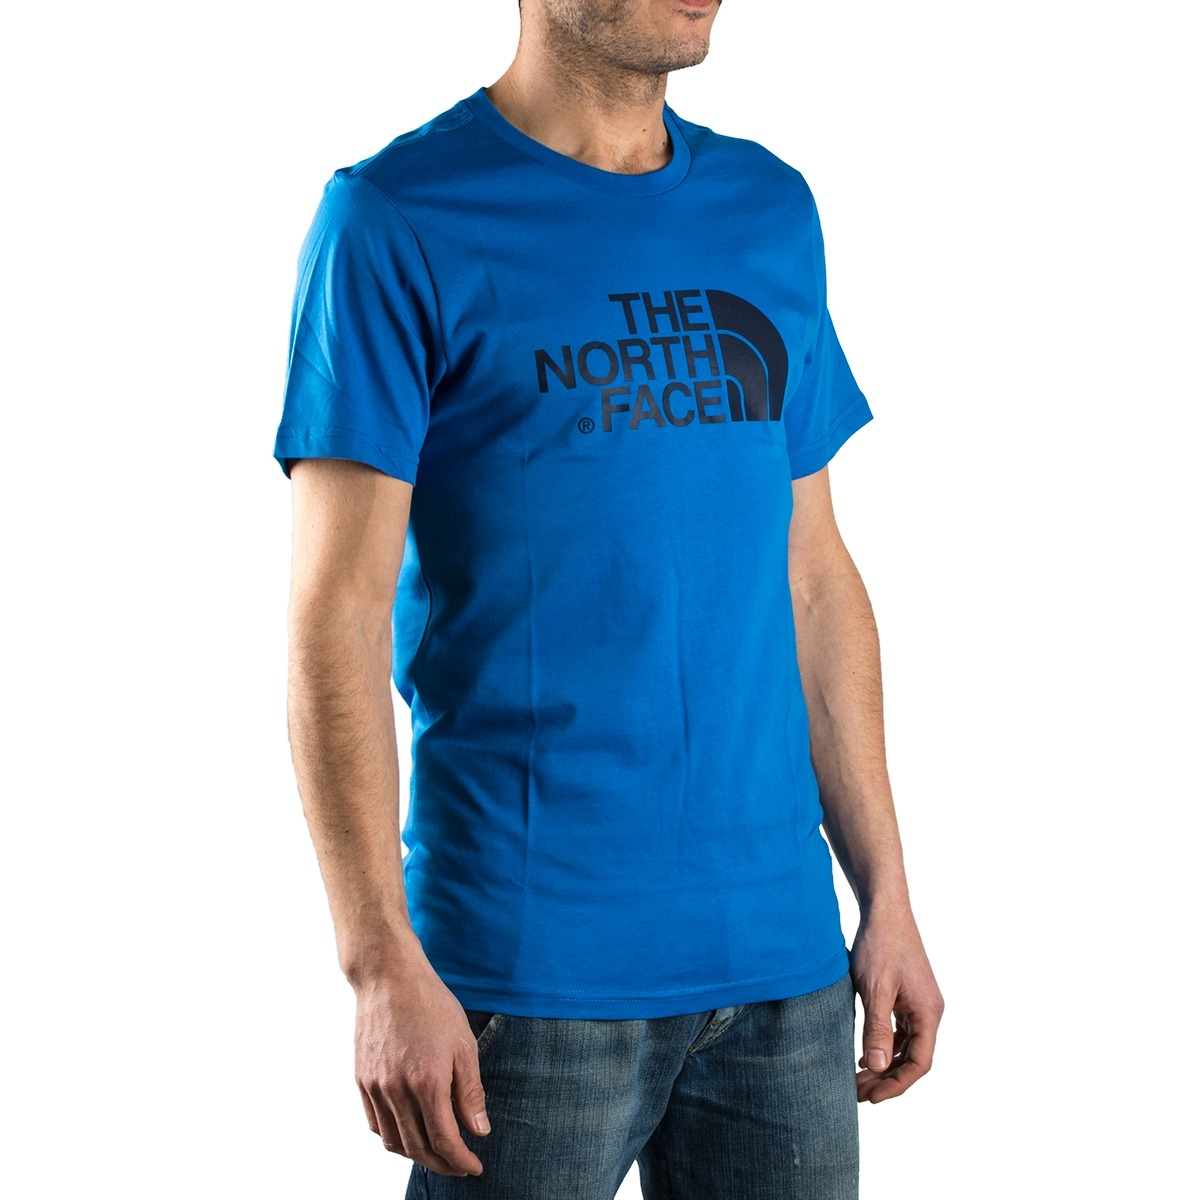 The North Face Camiseta Easy Tee Bomber Blue Azul Hombre